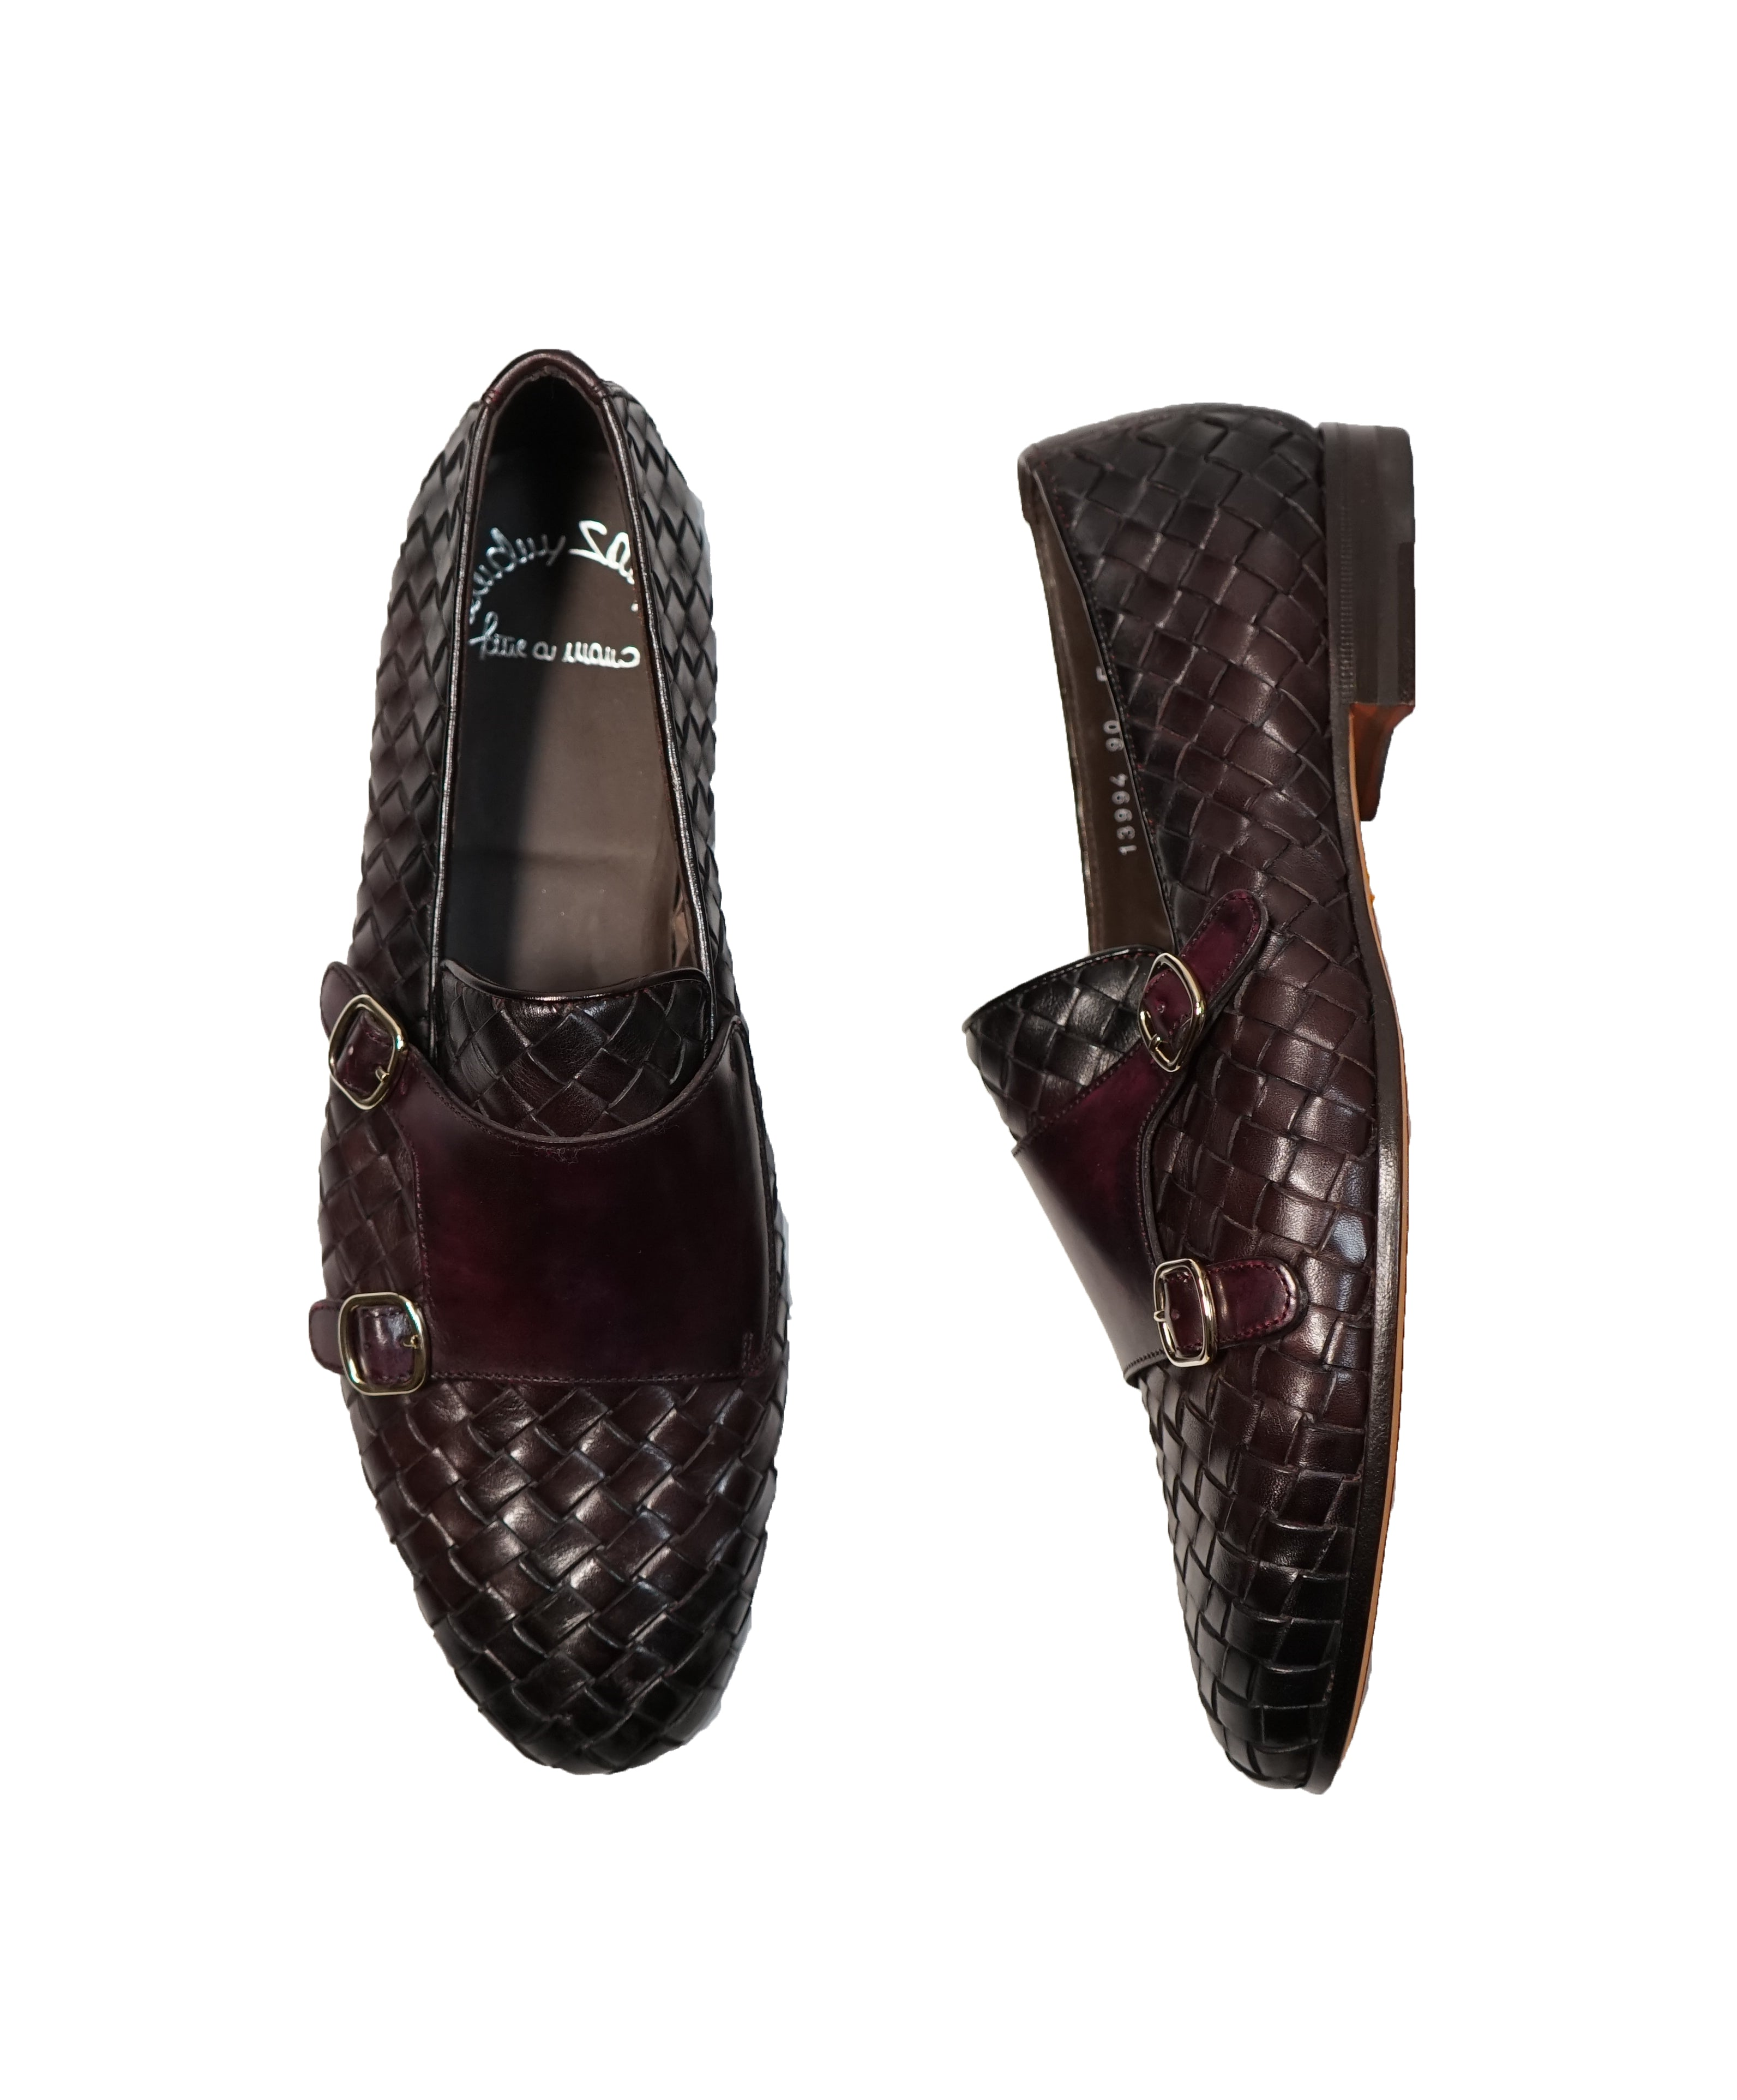 SANTONI - Hand-Antiqued Woven Leather Monk Strap Loafers - 9.5